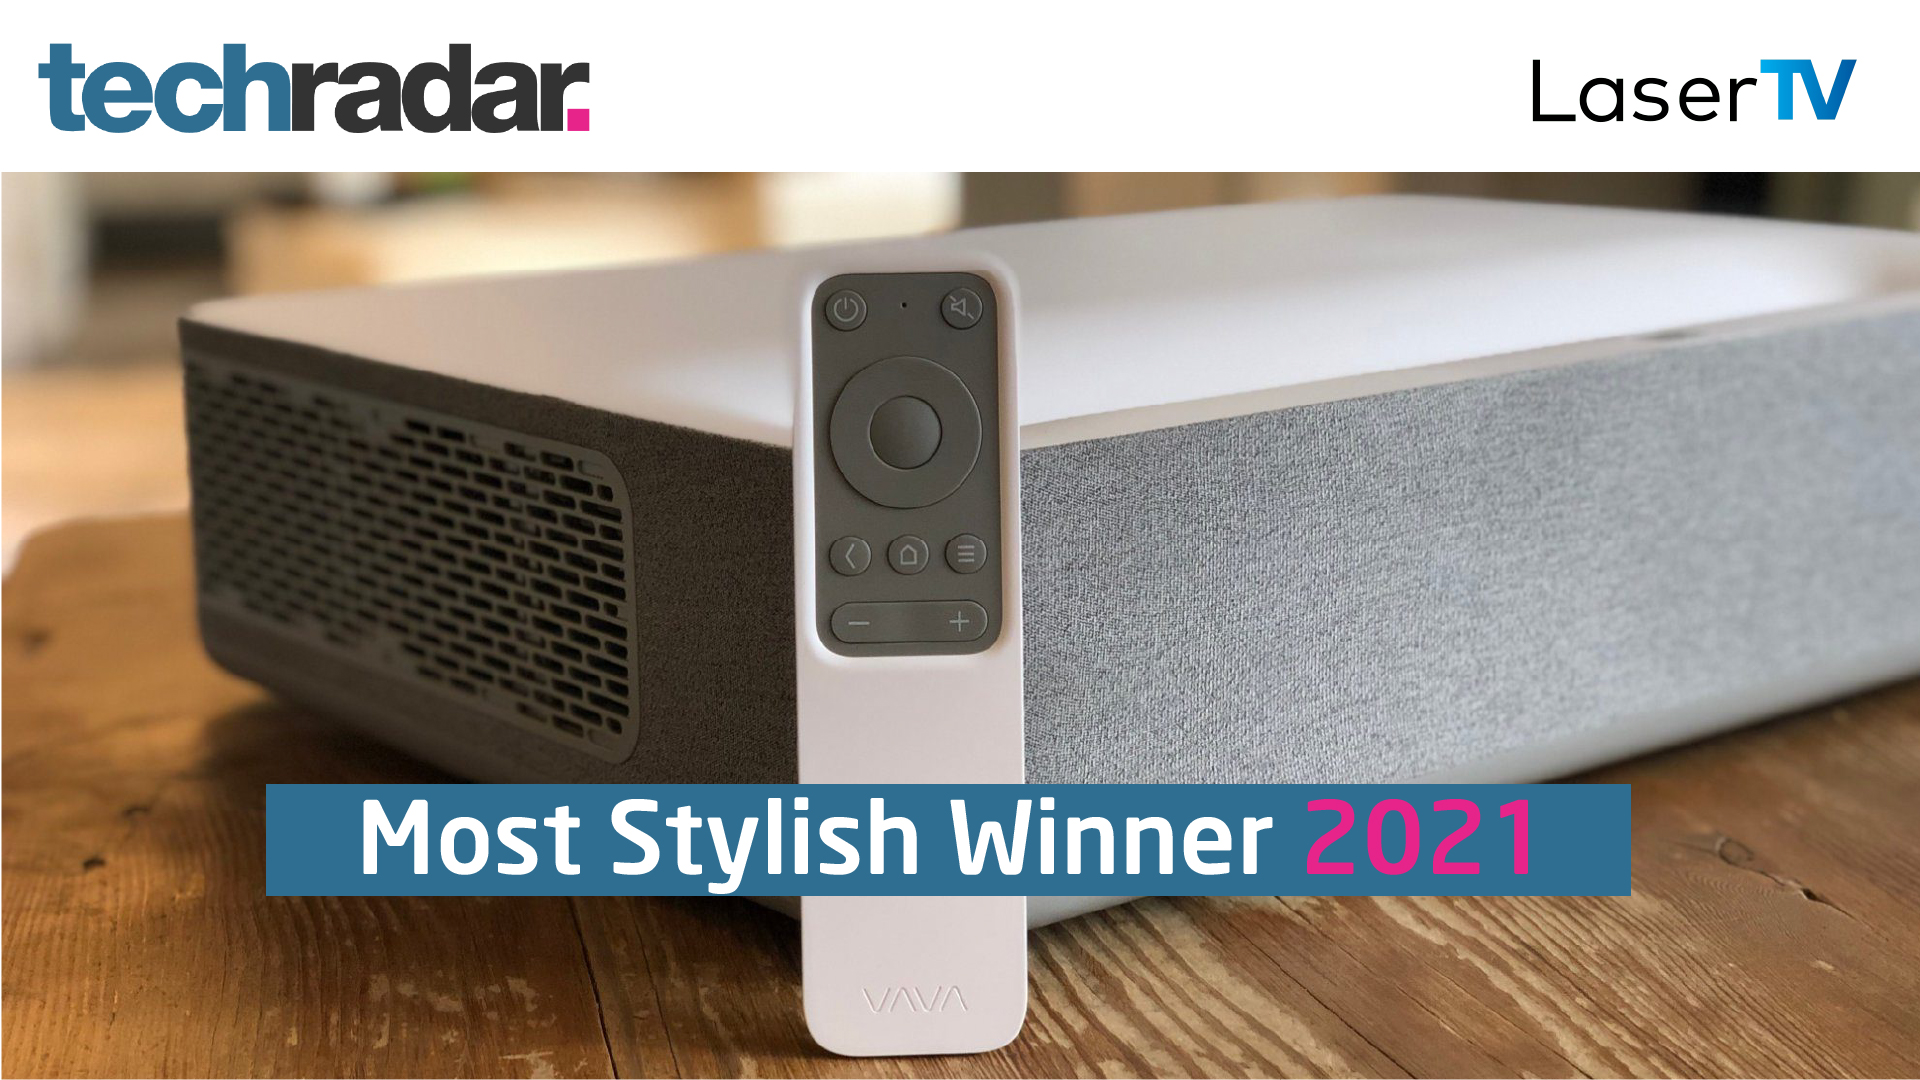 Close Up image of VAVA Short Throw Projector with techradar logo and LaserTV logo